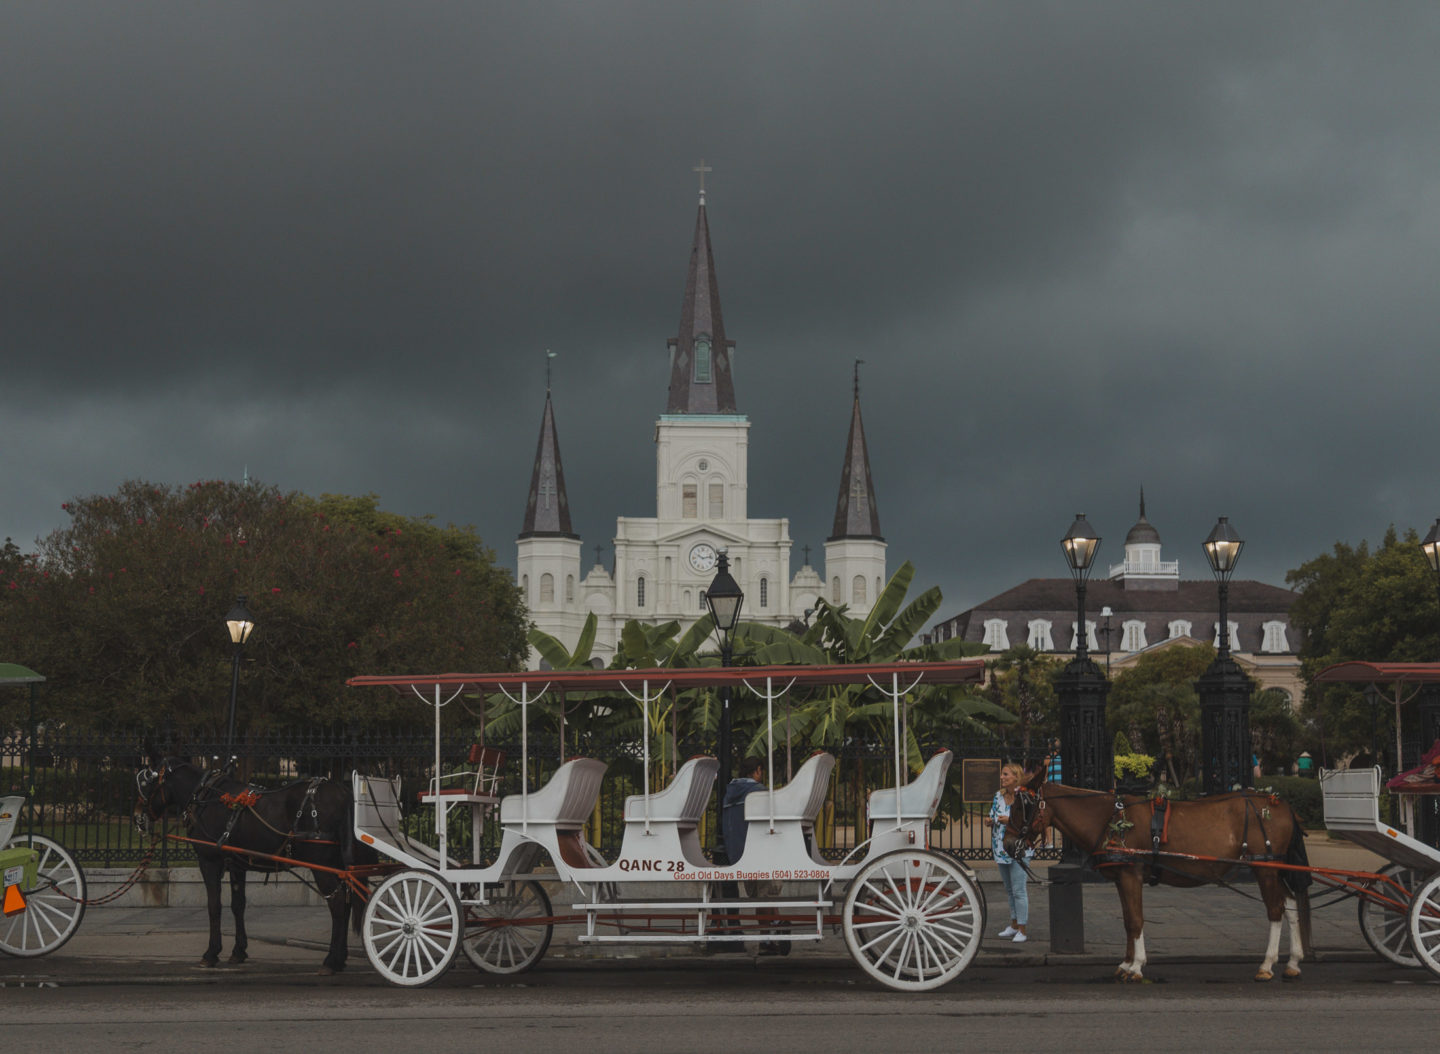 Horse and Carriage in front of Jackson Square, NOLA on a stormy day